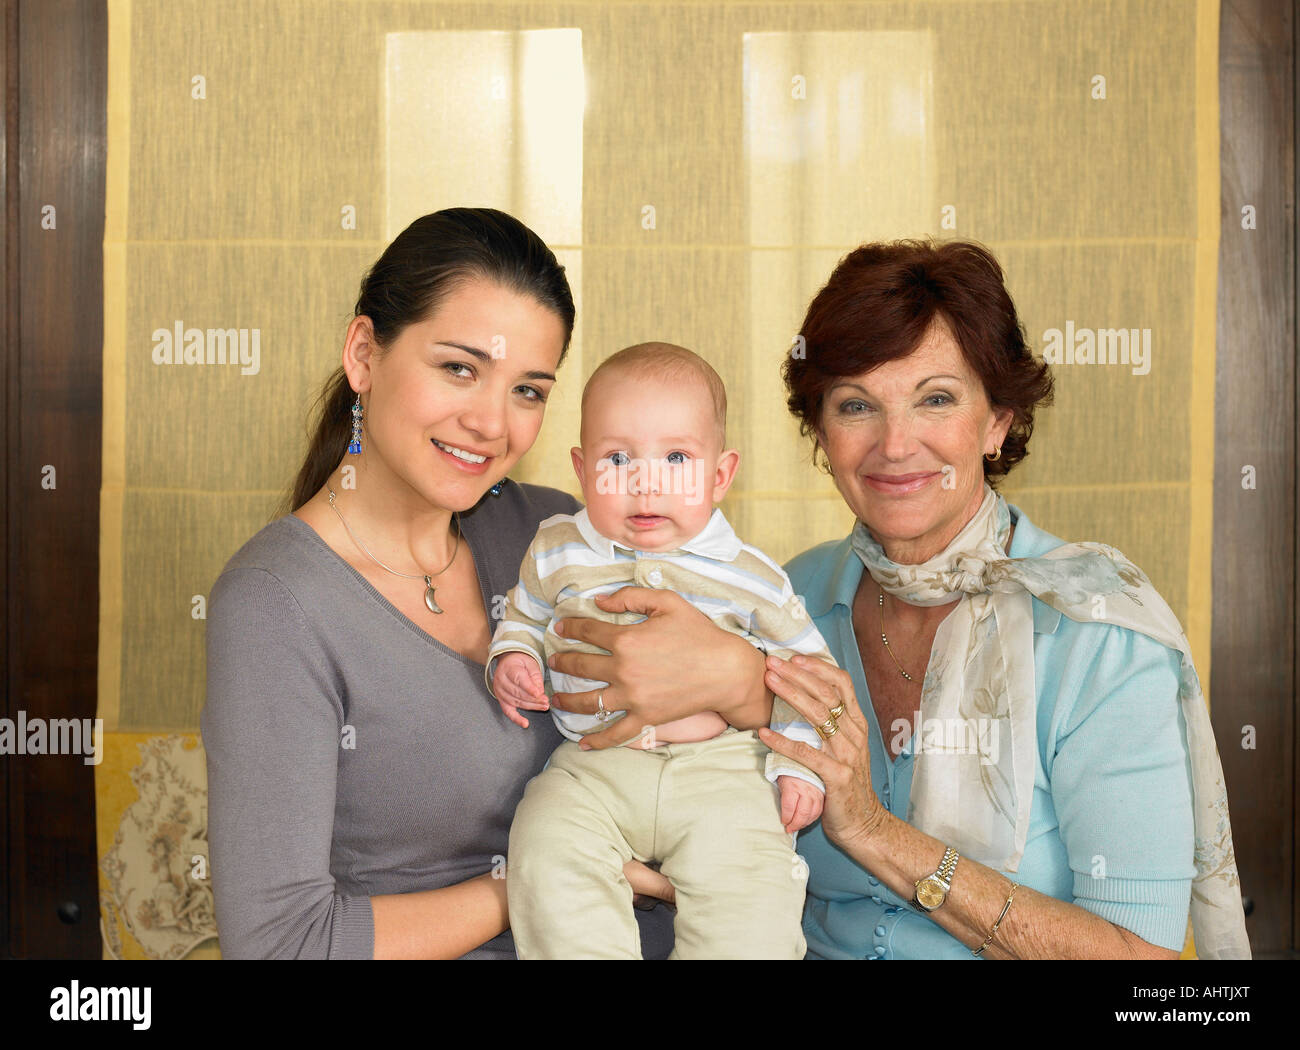 Mother and grandmother holding baby boy (1-3 months) smiling, portrait - Stock Image